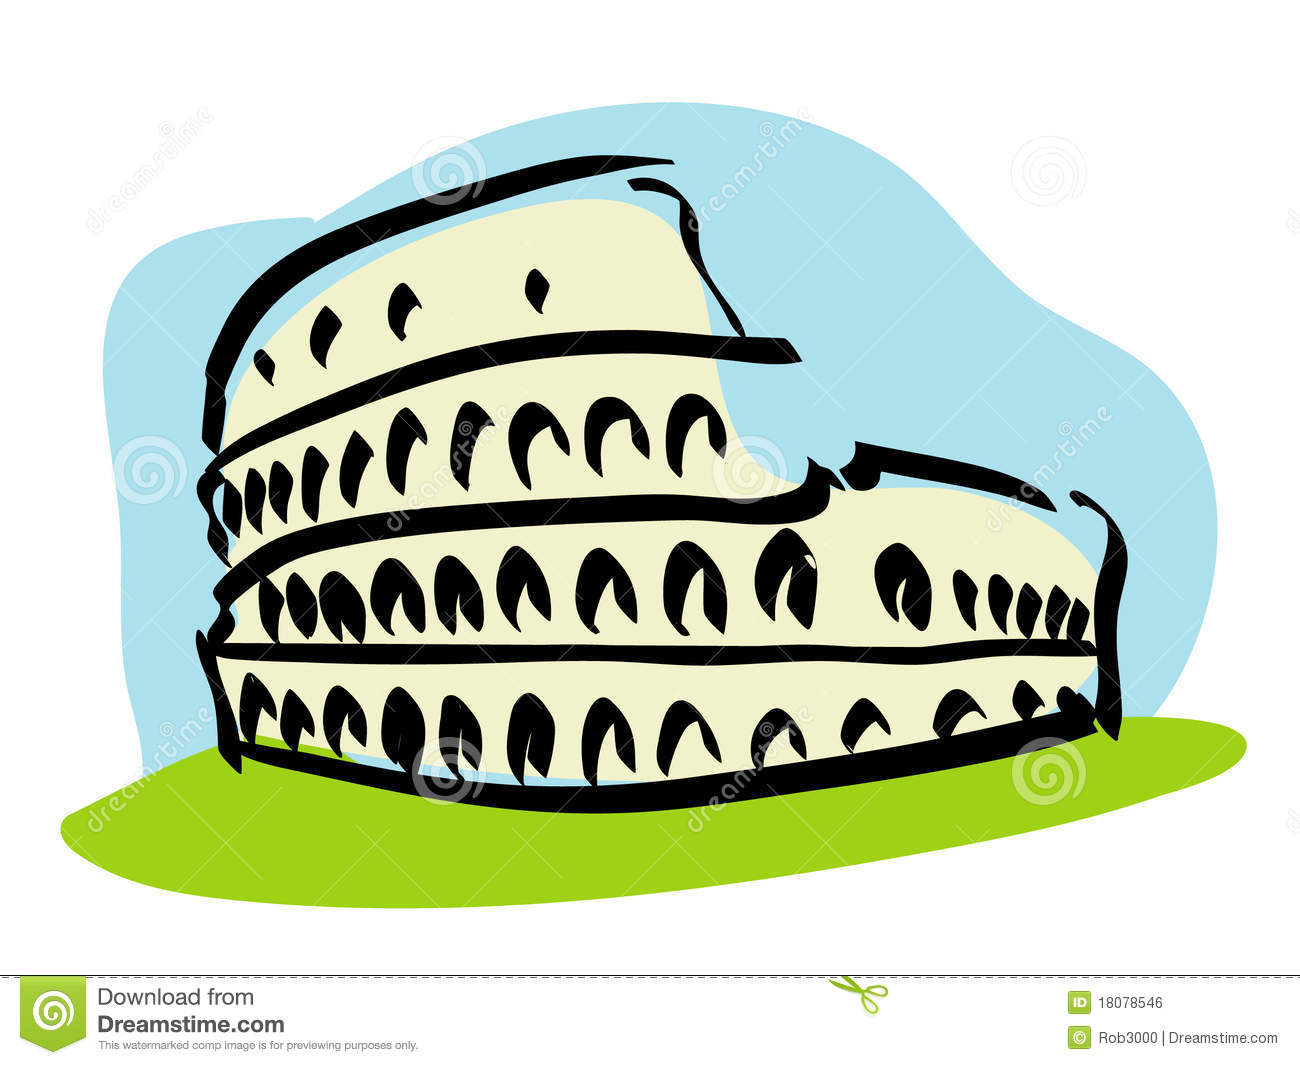 Colosseum Royalty Free Stock Image Image 18078546